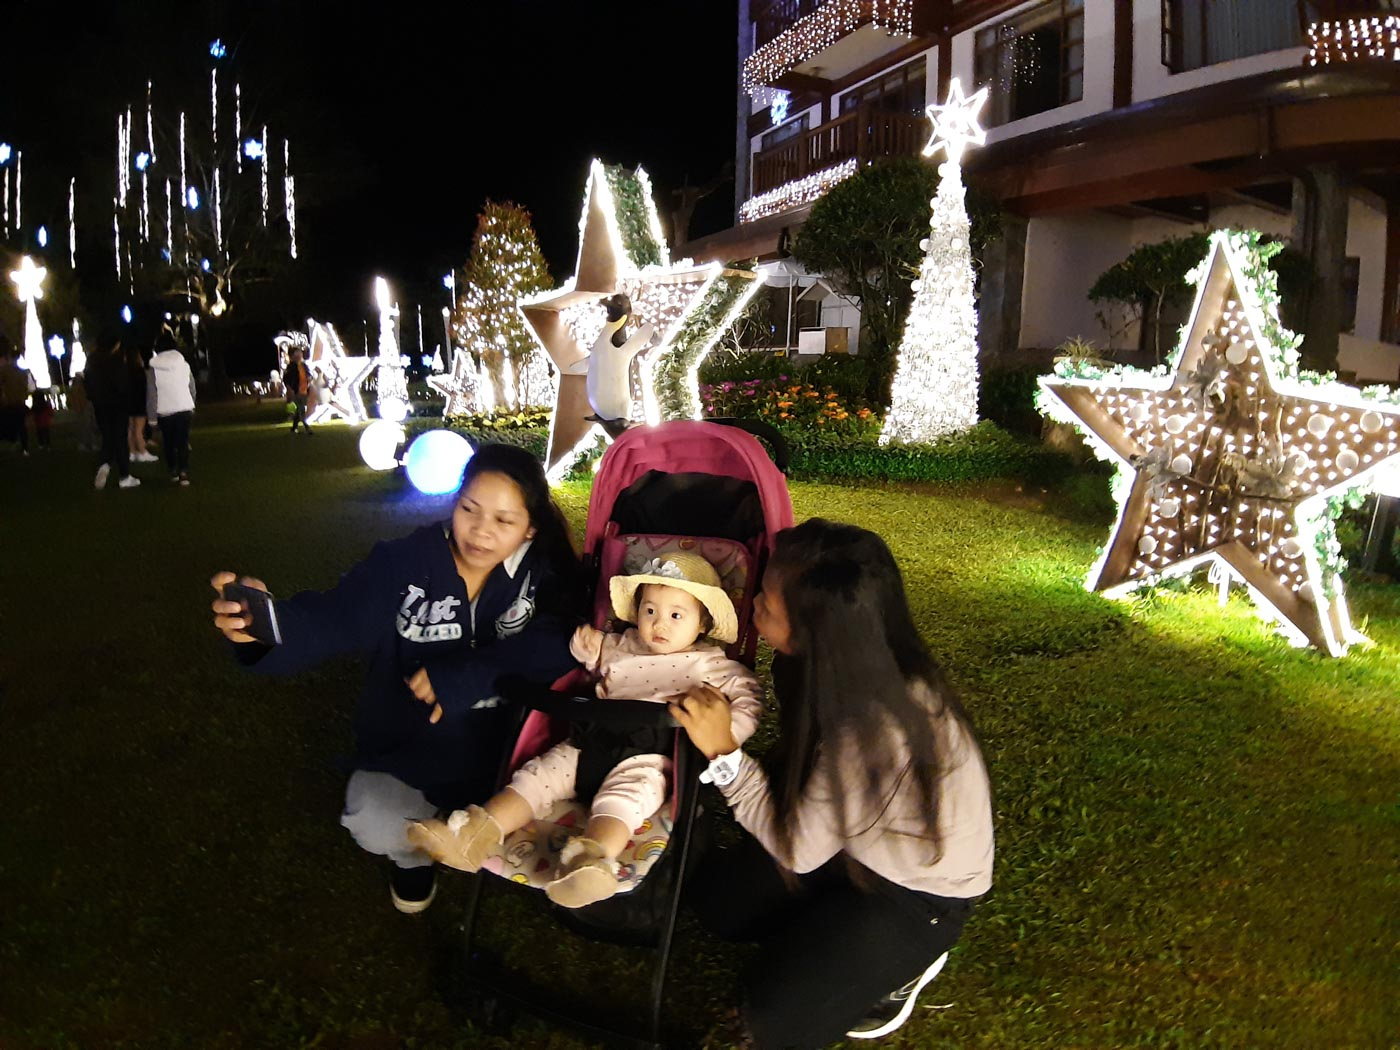 PHOTO TIME.  A family takes a selfie at the Camp John Hay Manor Hotel as they light their Christmas decorations and tree in Baguio. Photo by Mau Victa/Rappler